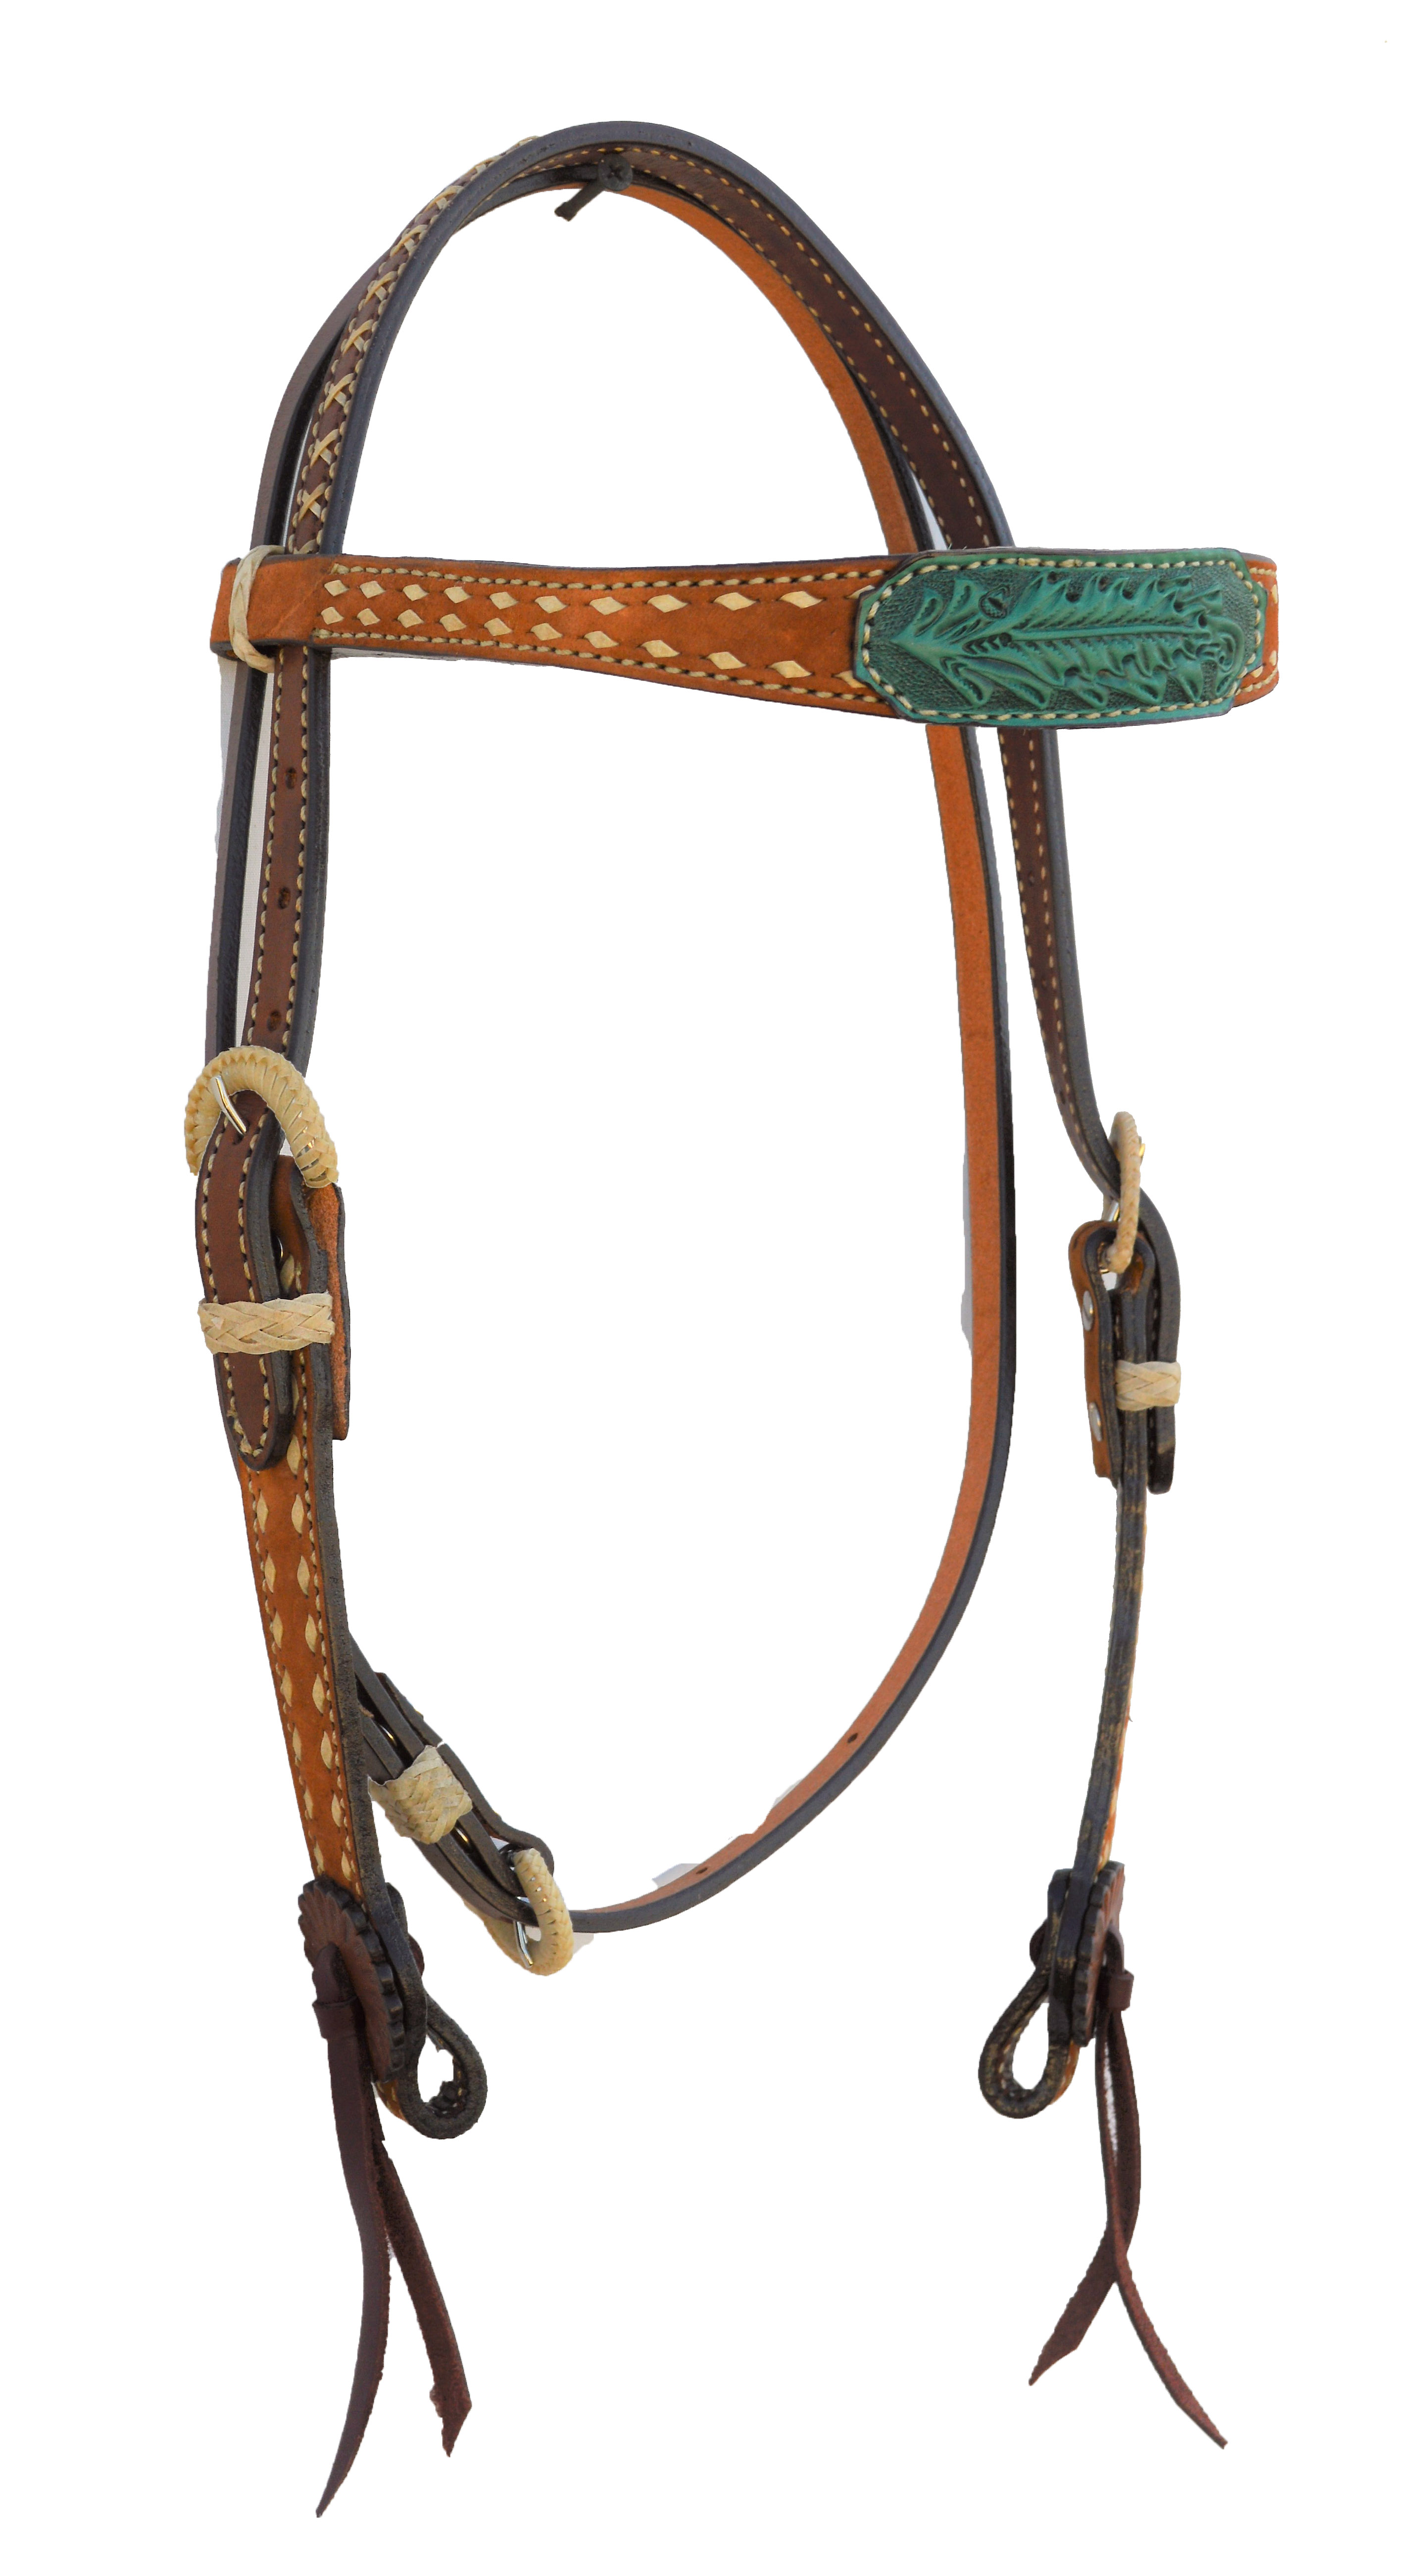 TOAST ROUGH OUT HEADSTALL WITH TURQUOISE LEATHER PATCH AND BUCKSTITCHING